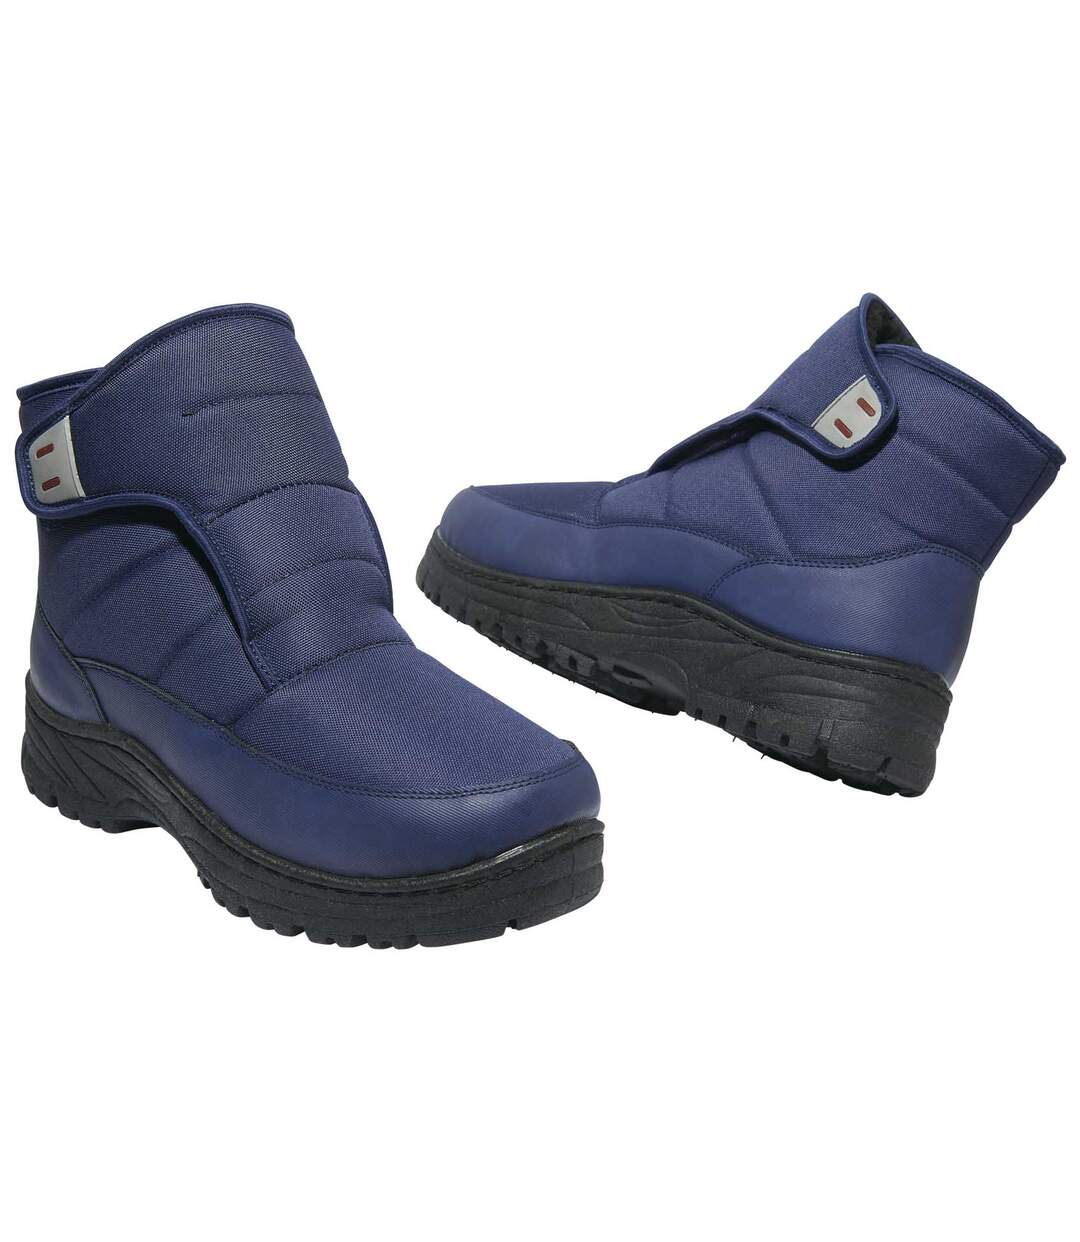 Men's Blue Sherpa-Lined Snow Boots - Water-Repellent